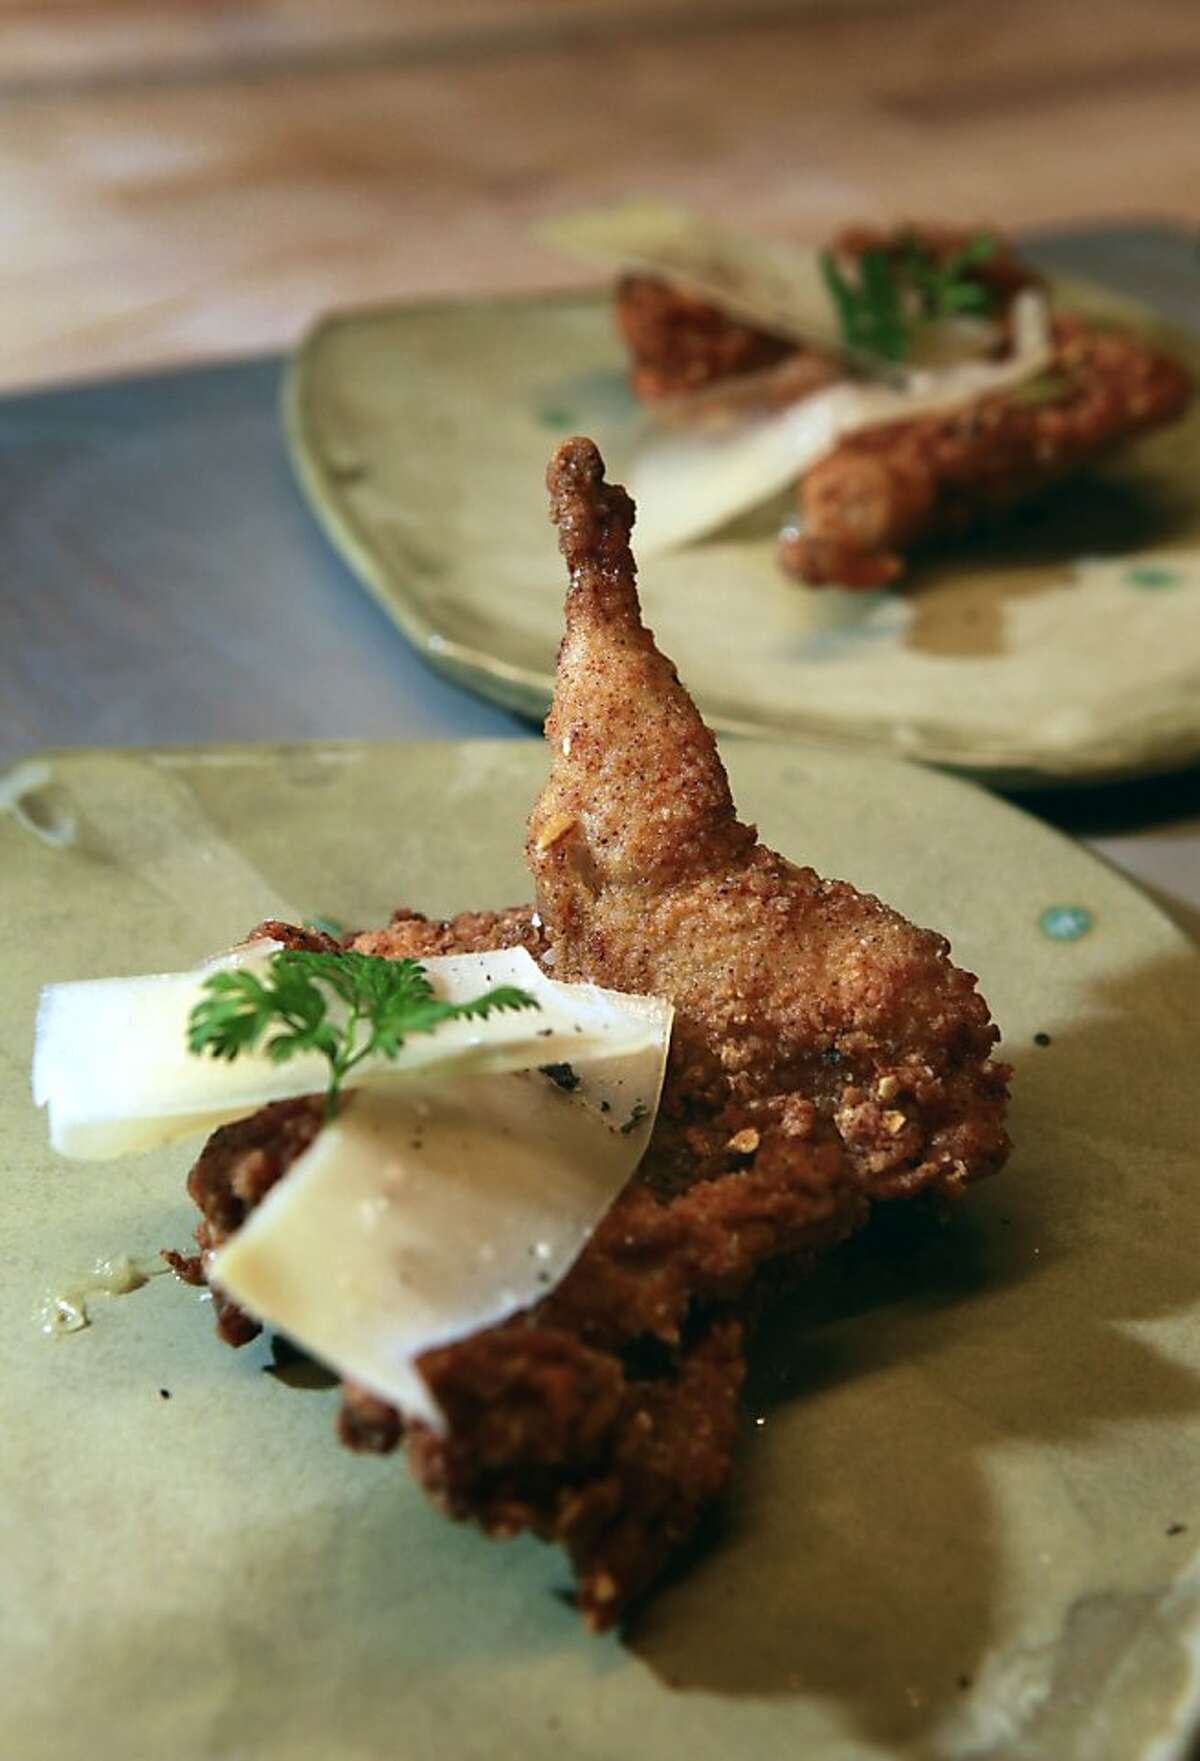 Stuart Brioza, chef/owner of the State Bird Provisions restaurant on Fillmore Street, plates his signature quail dish in San Francisco, Ca., on Wednesday Jan. 4 2012.